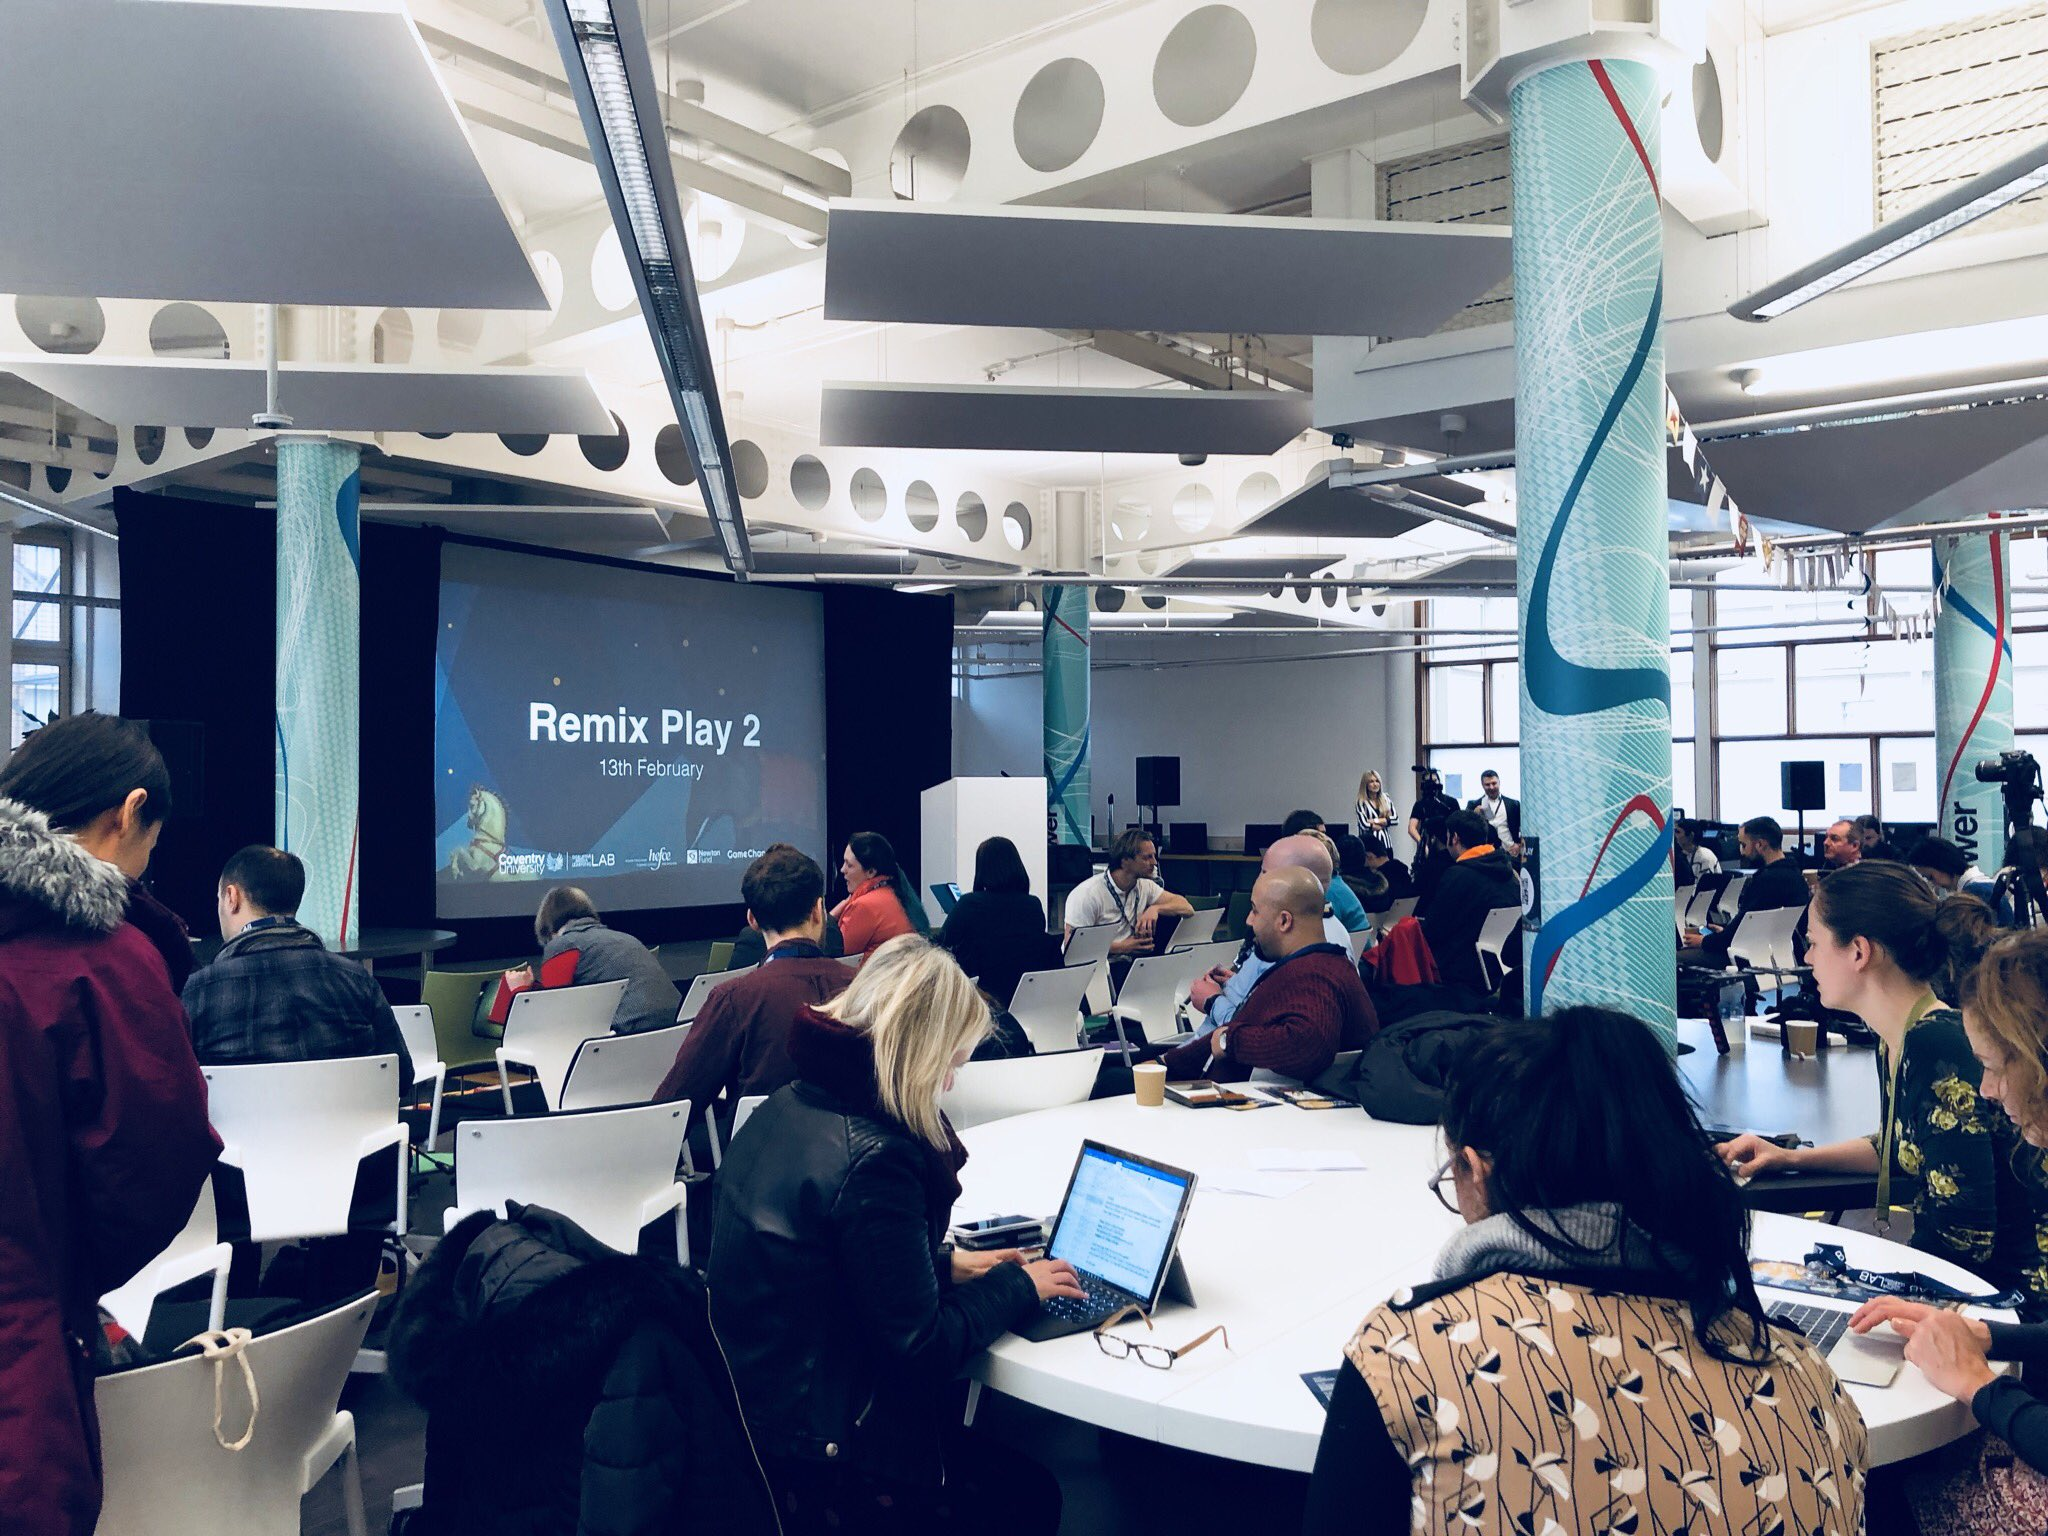 We're all geared up for #RemixPlay2. Join us on the top floor of @CovUniLibrary for a day filled with playfulness and fun! #gchangers #disruptedu https://t.co/lnUECNs98m